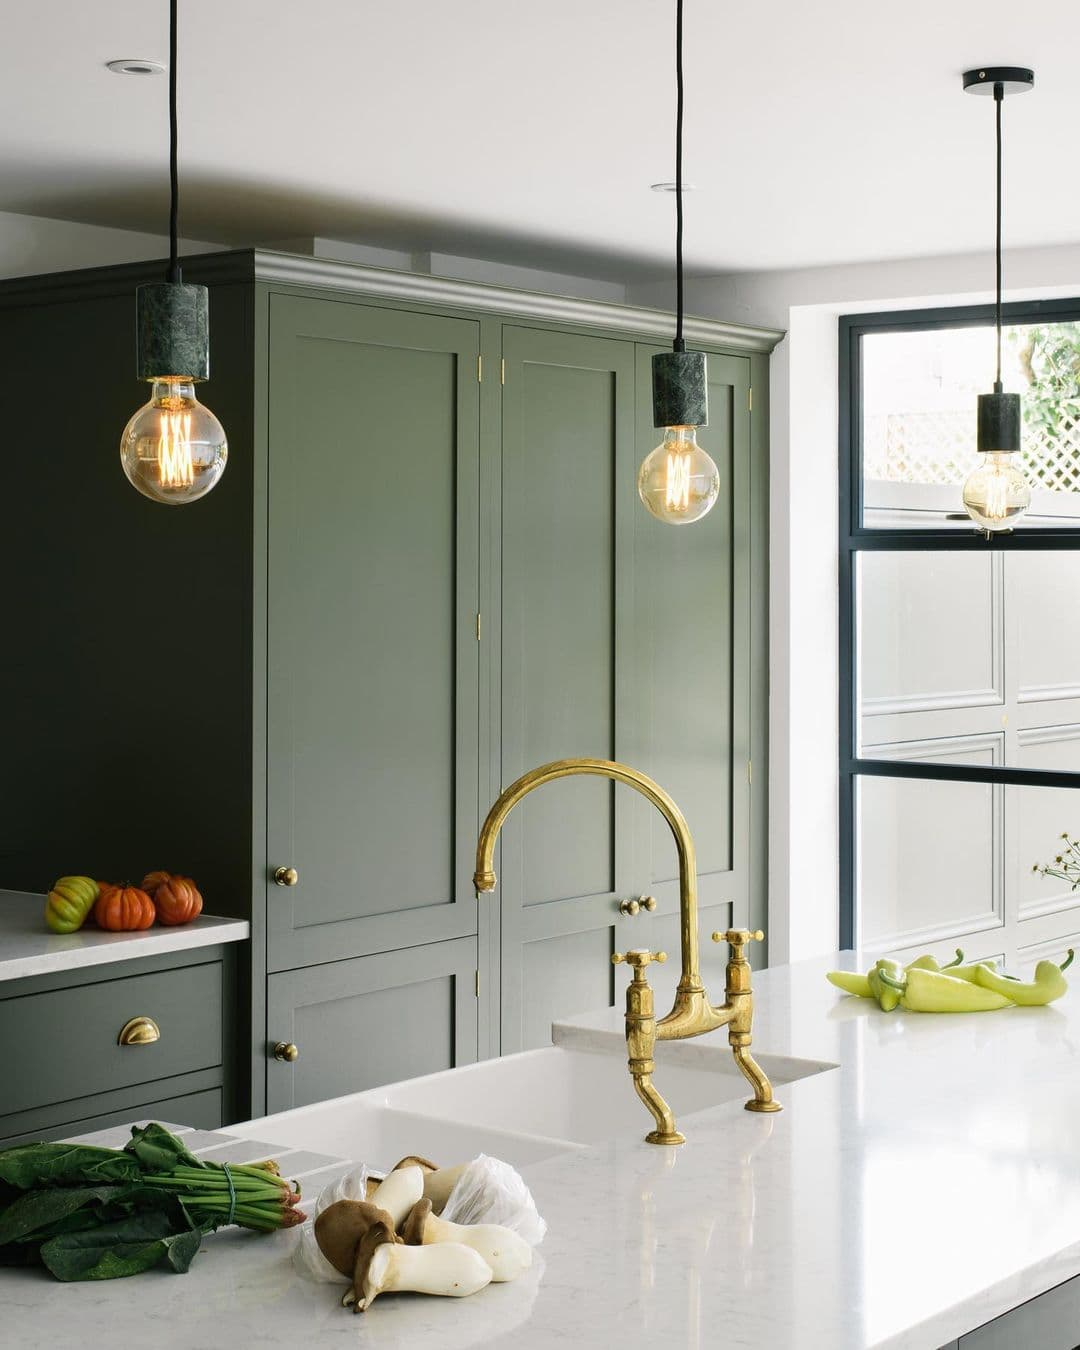 this is a deVOL kitchen with a two sink butler sink and gold taps